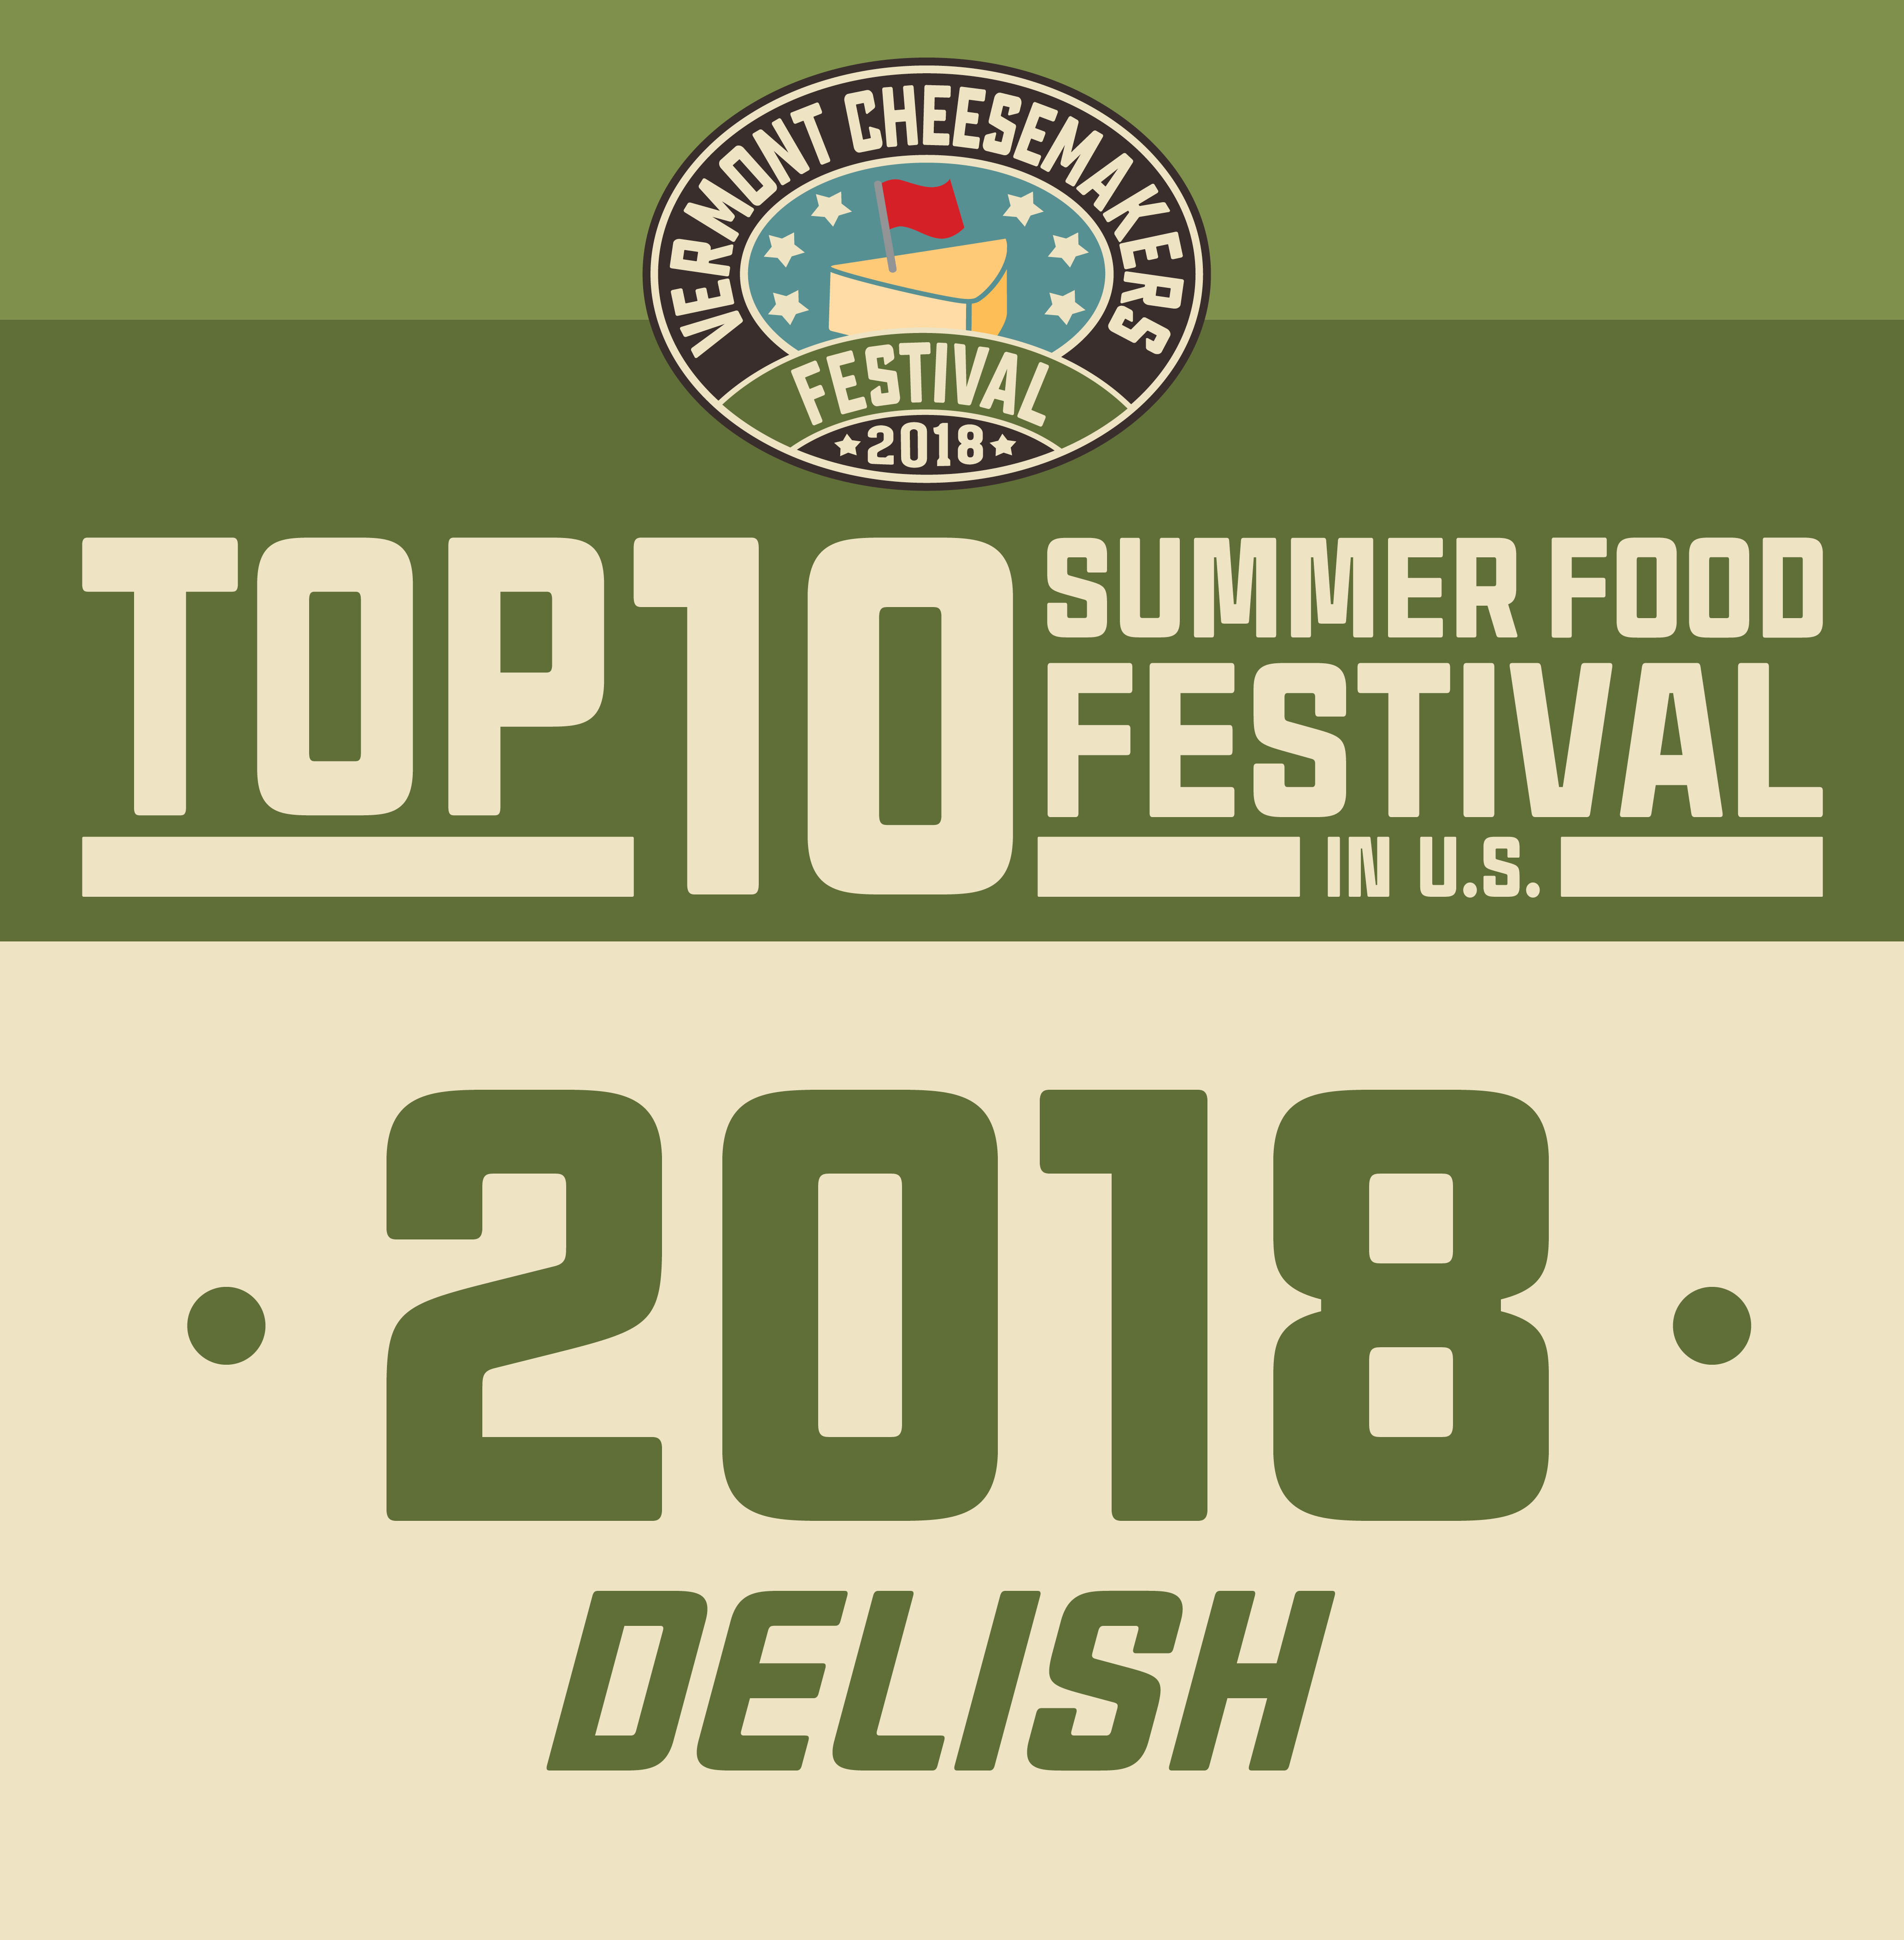 Here Are The Best Food Festivals of Summer 2018